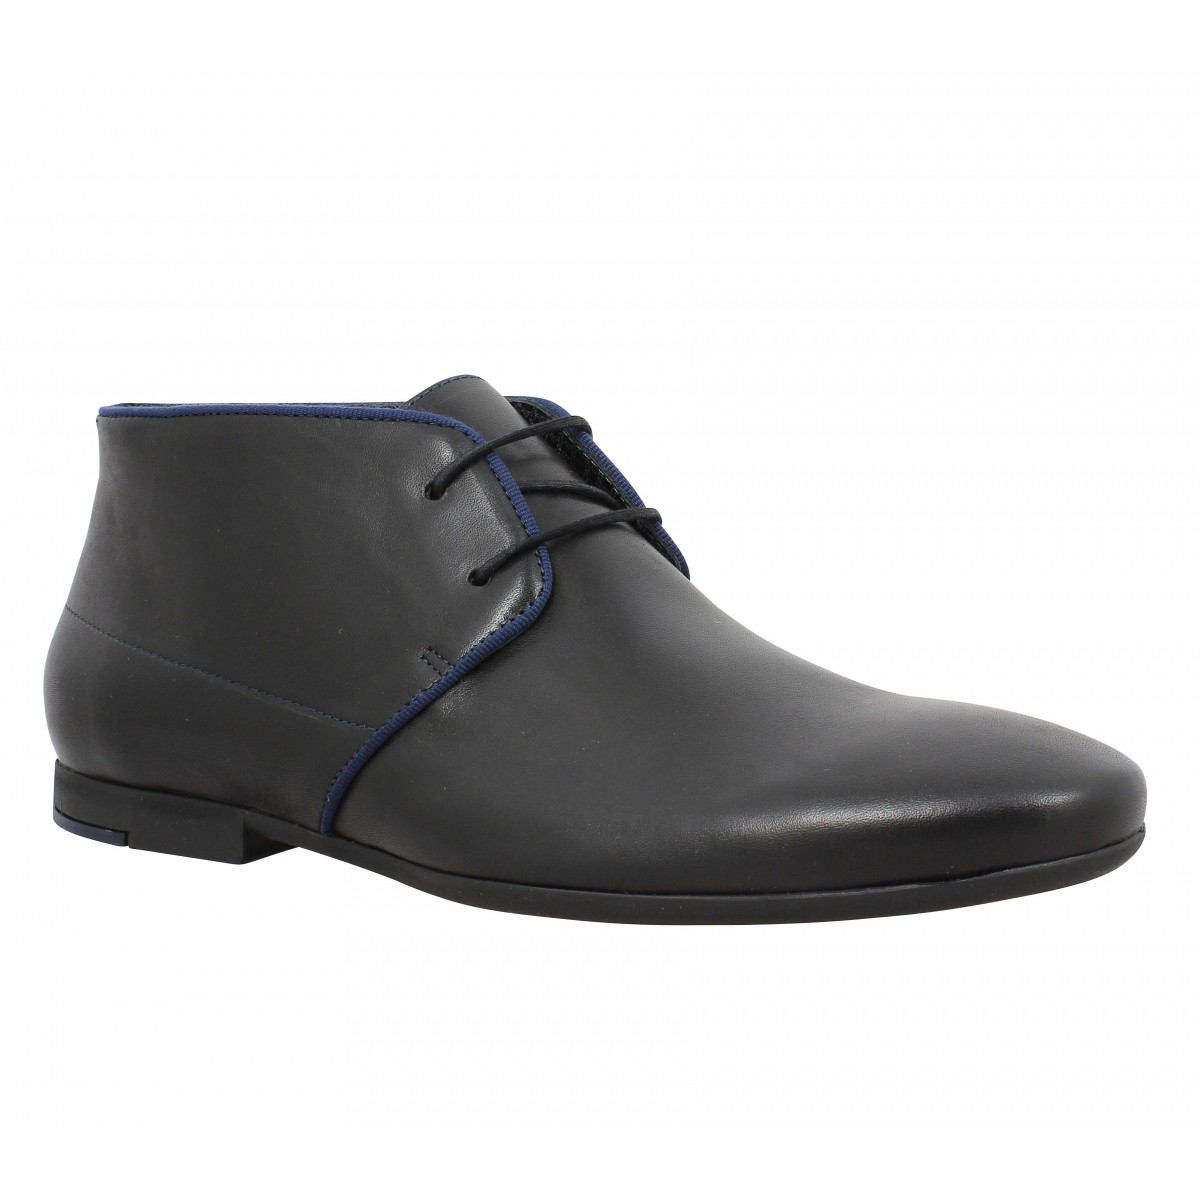 Bottines PAUL & JOE Prayer cuir Homme Noir